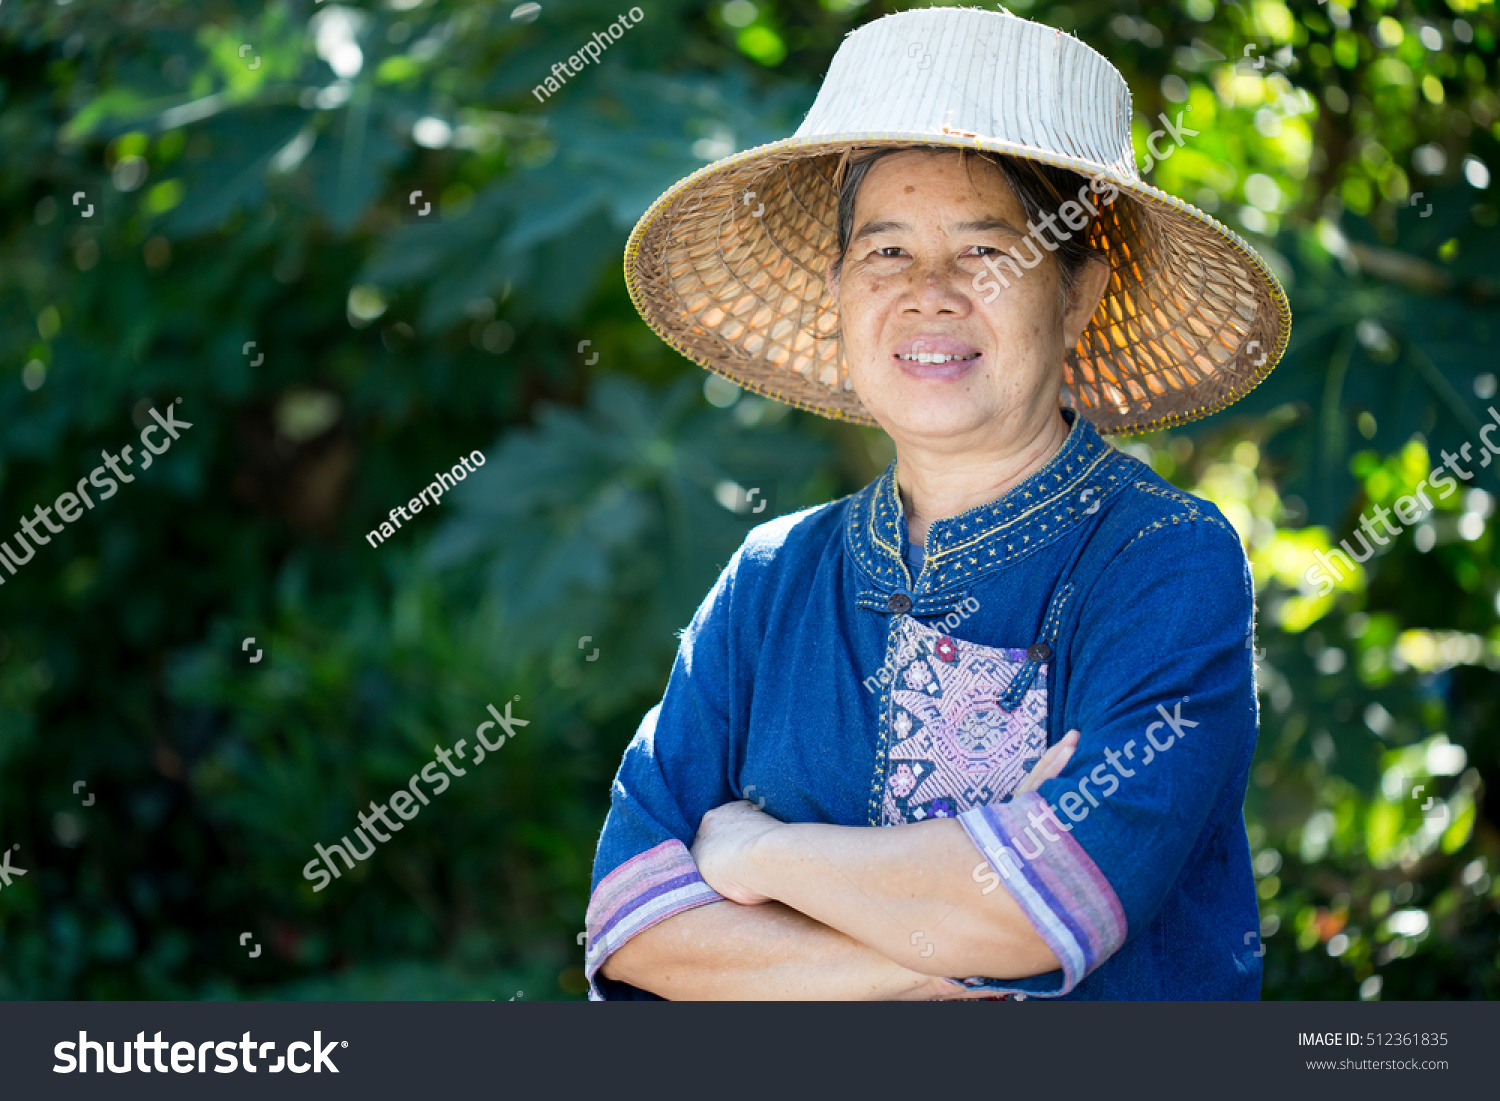 Old Women Wearing Straw Hats Gardenasian Stock Photo (Edit Now ... 18e4885d052